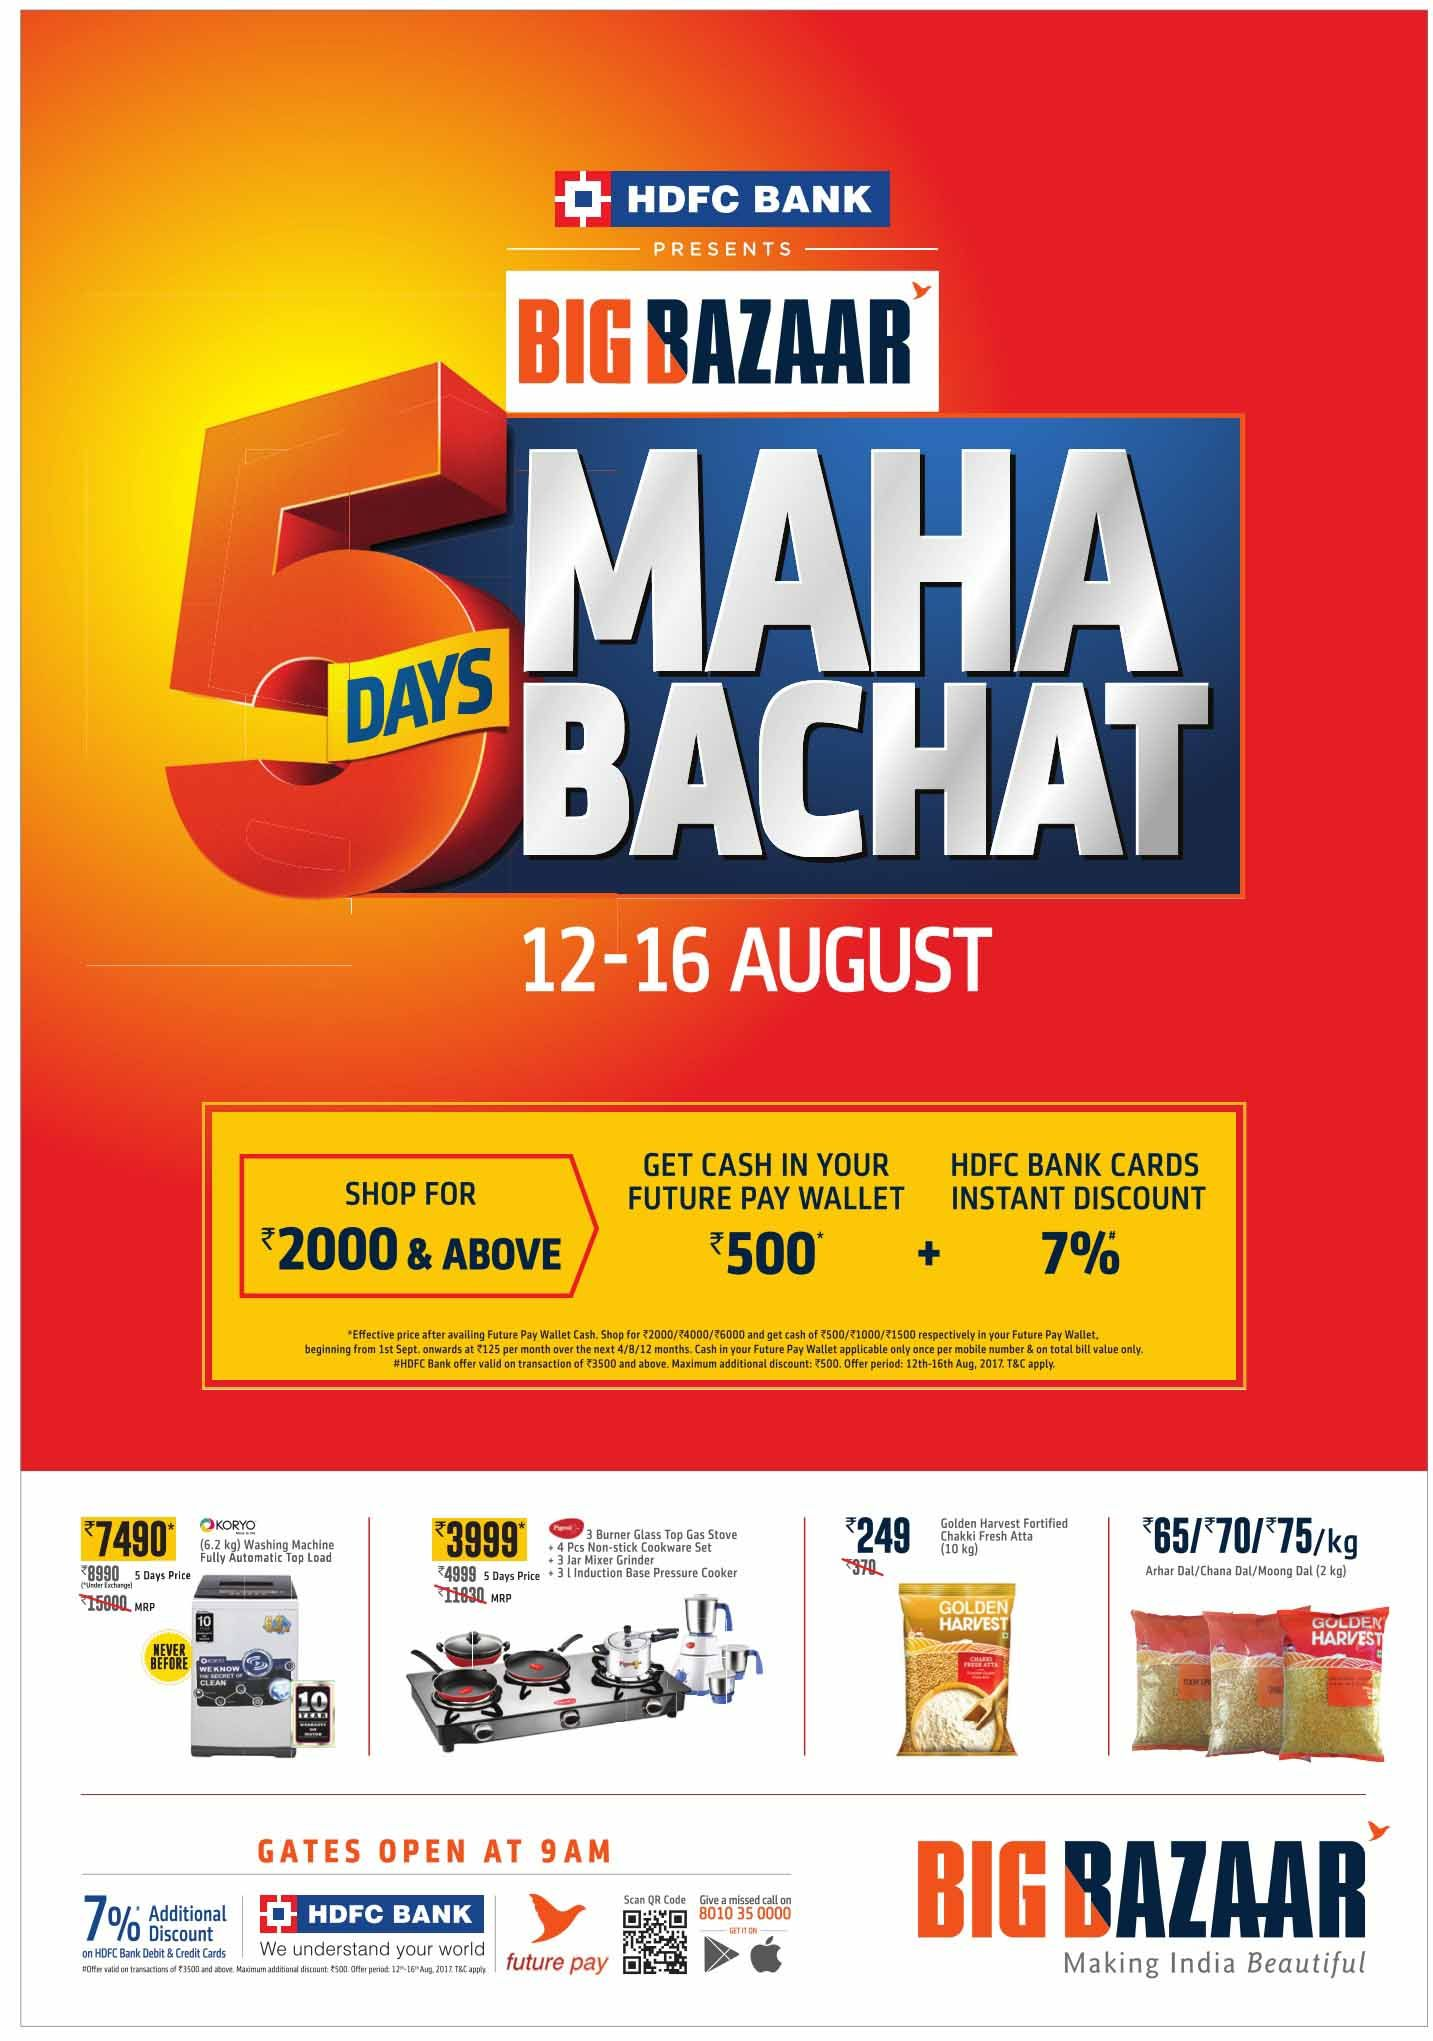 2dcf178460 Big Bazaar to organize 5 Days Maha Bachat from 12 to 16 August ...